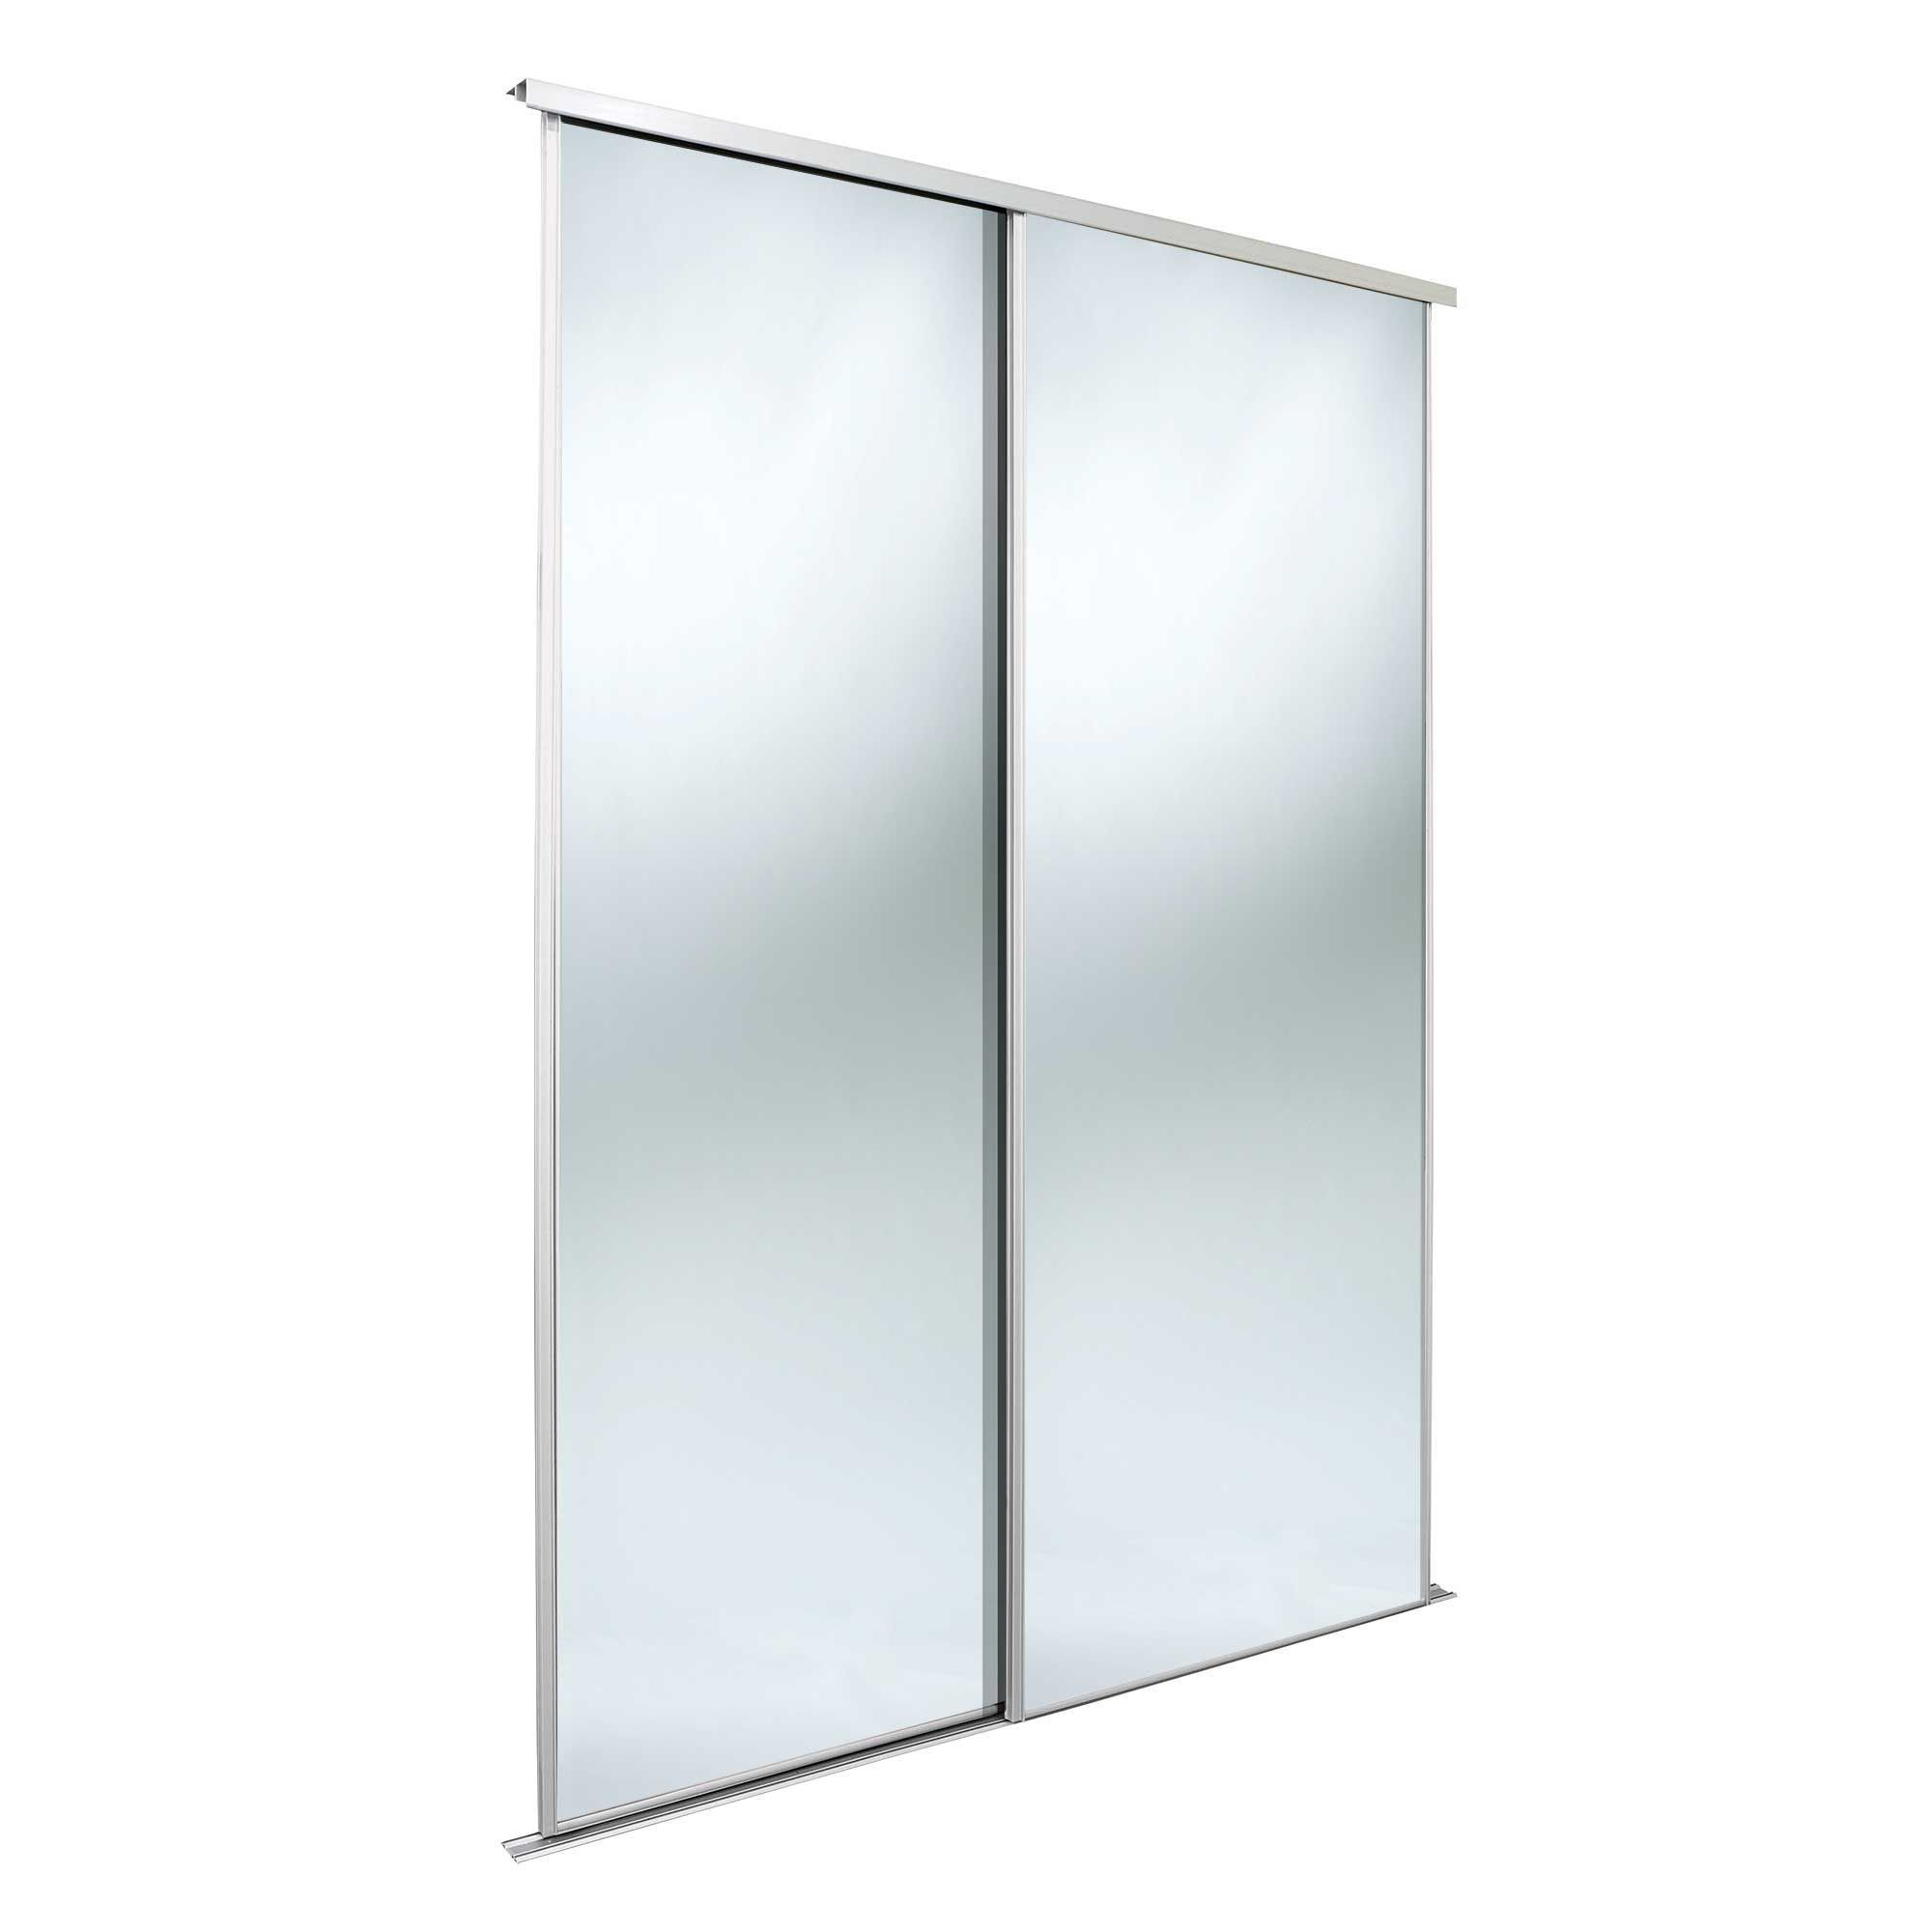 Classic Mirrored White Mirror Effect Sliding Wardrobe Door H2220